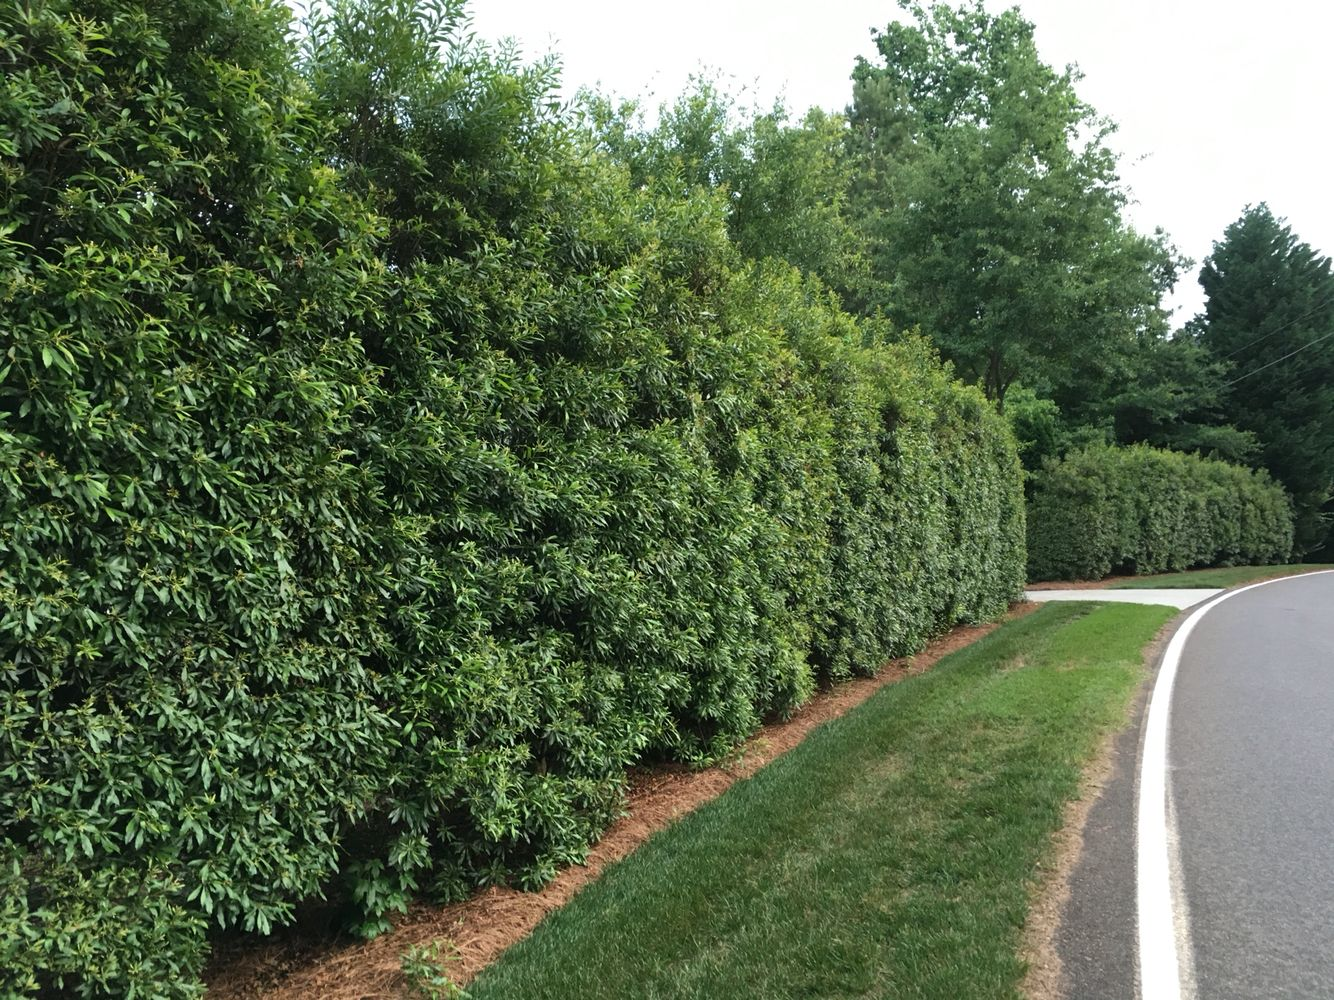 Wax Myrtle Hedge Http Www Theplantingtree Com Wax Myrtle Html Best Trees For Privacy Privacy Landscaping Privacy Landscaping Backyard